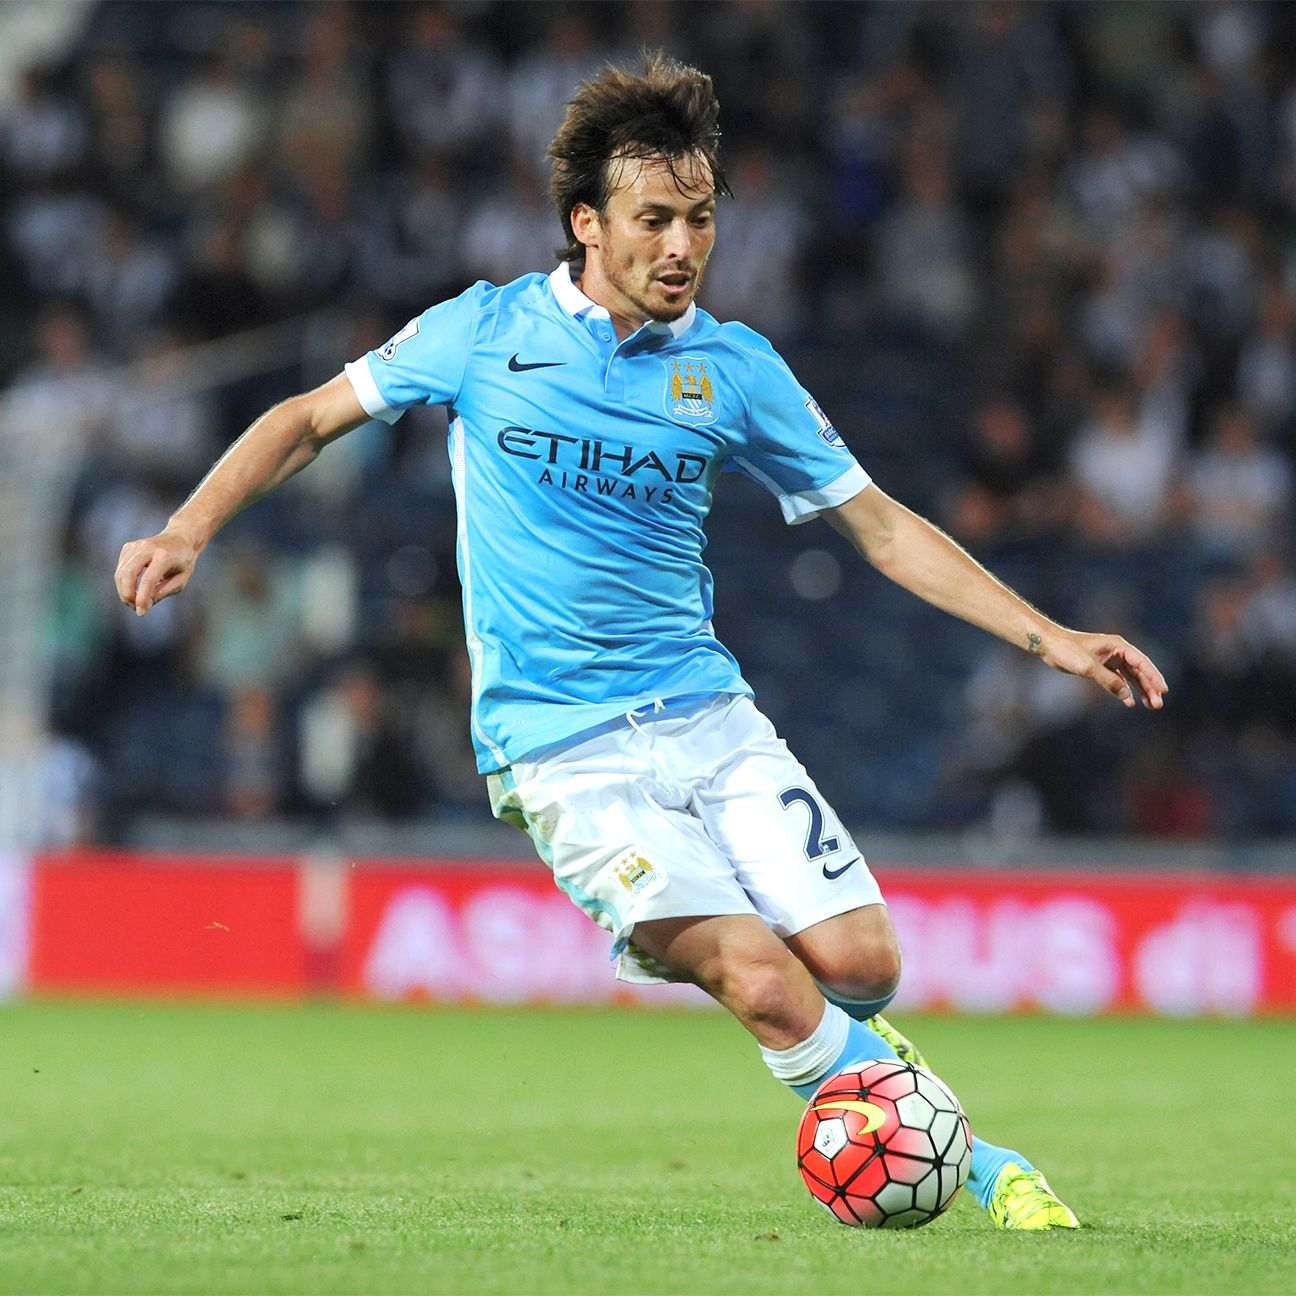 David Silva has provided a major spark in Manchester City's attack so far this season.